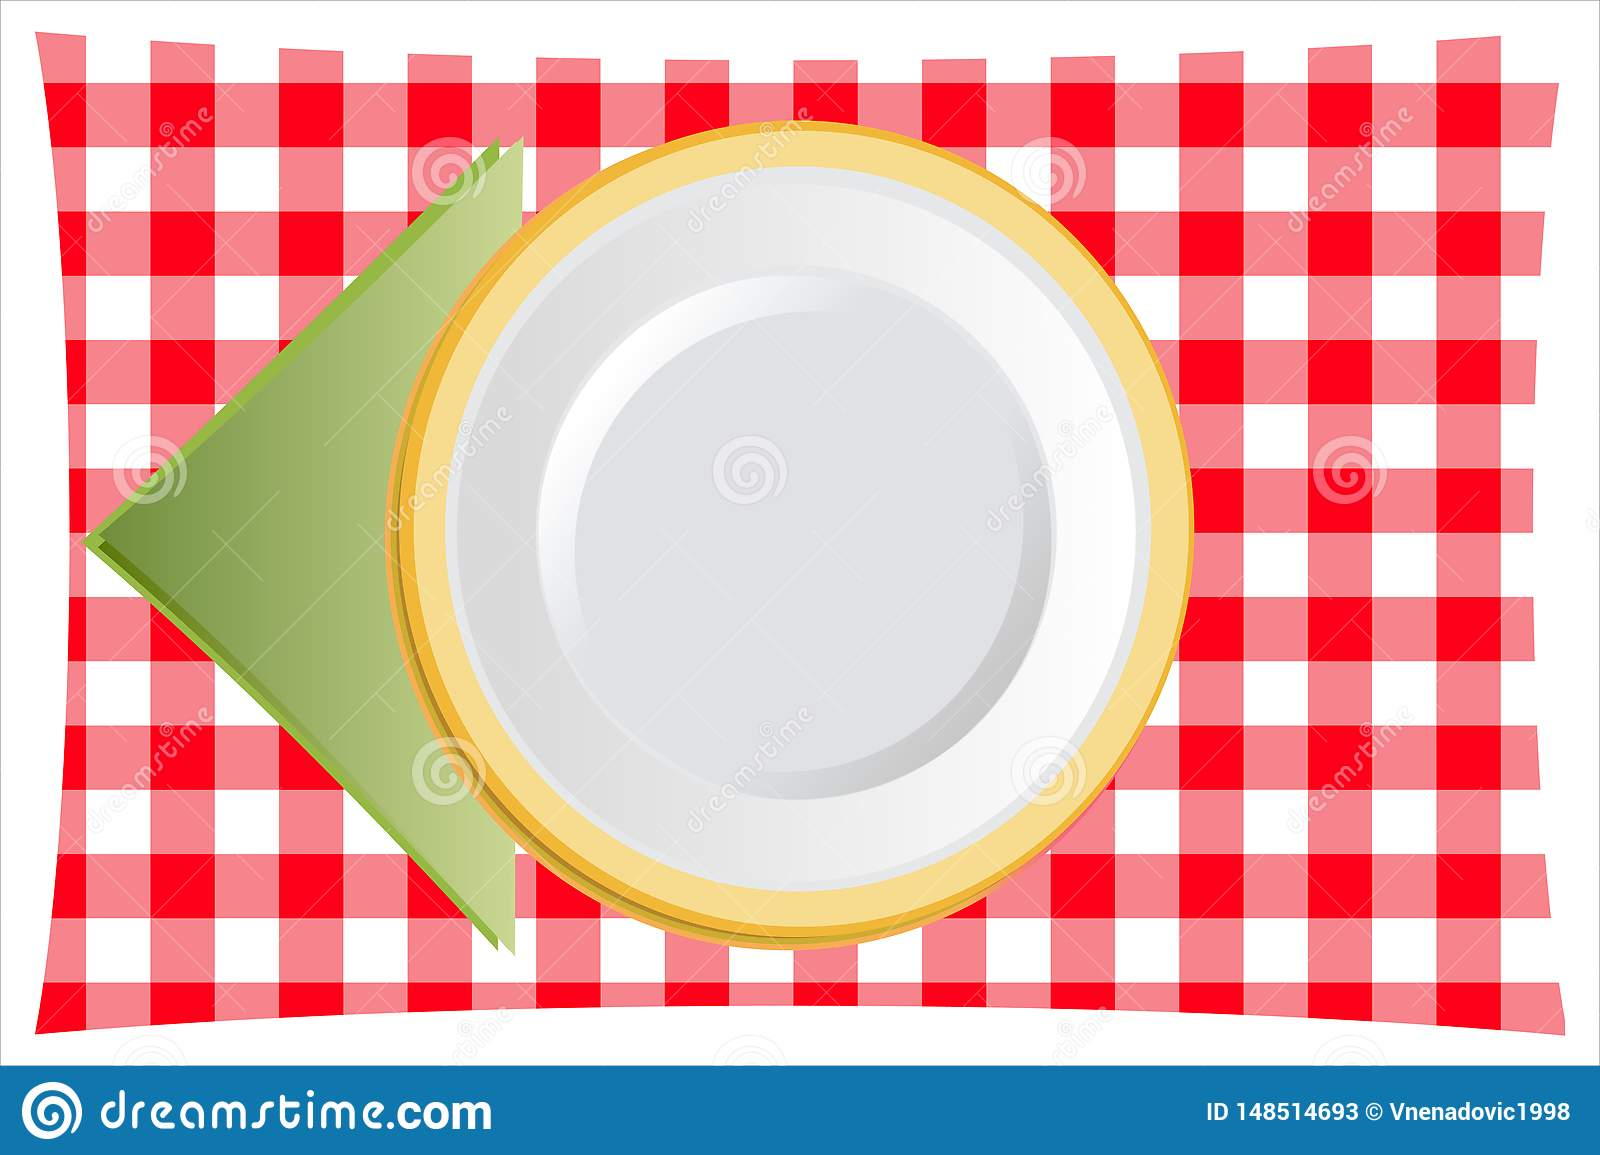 Dinner Plate with table napkin